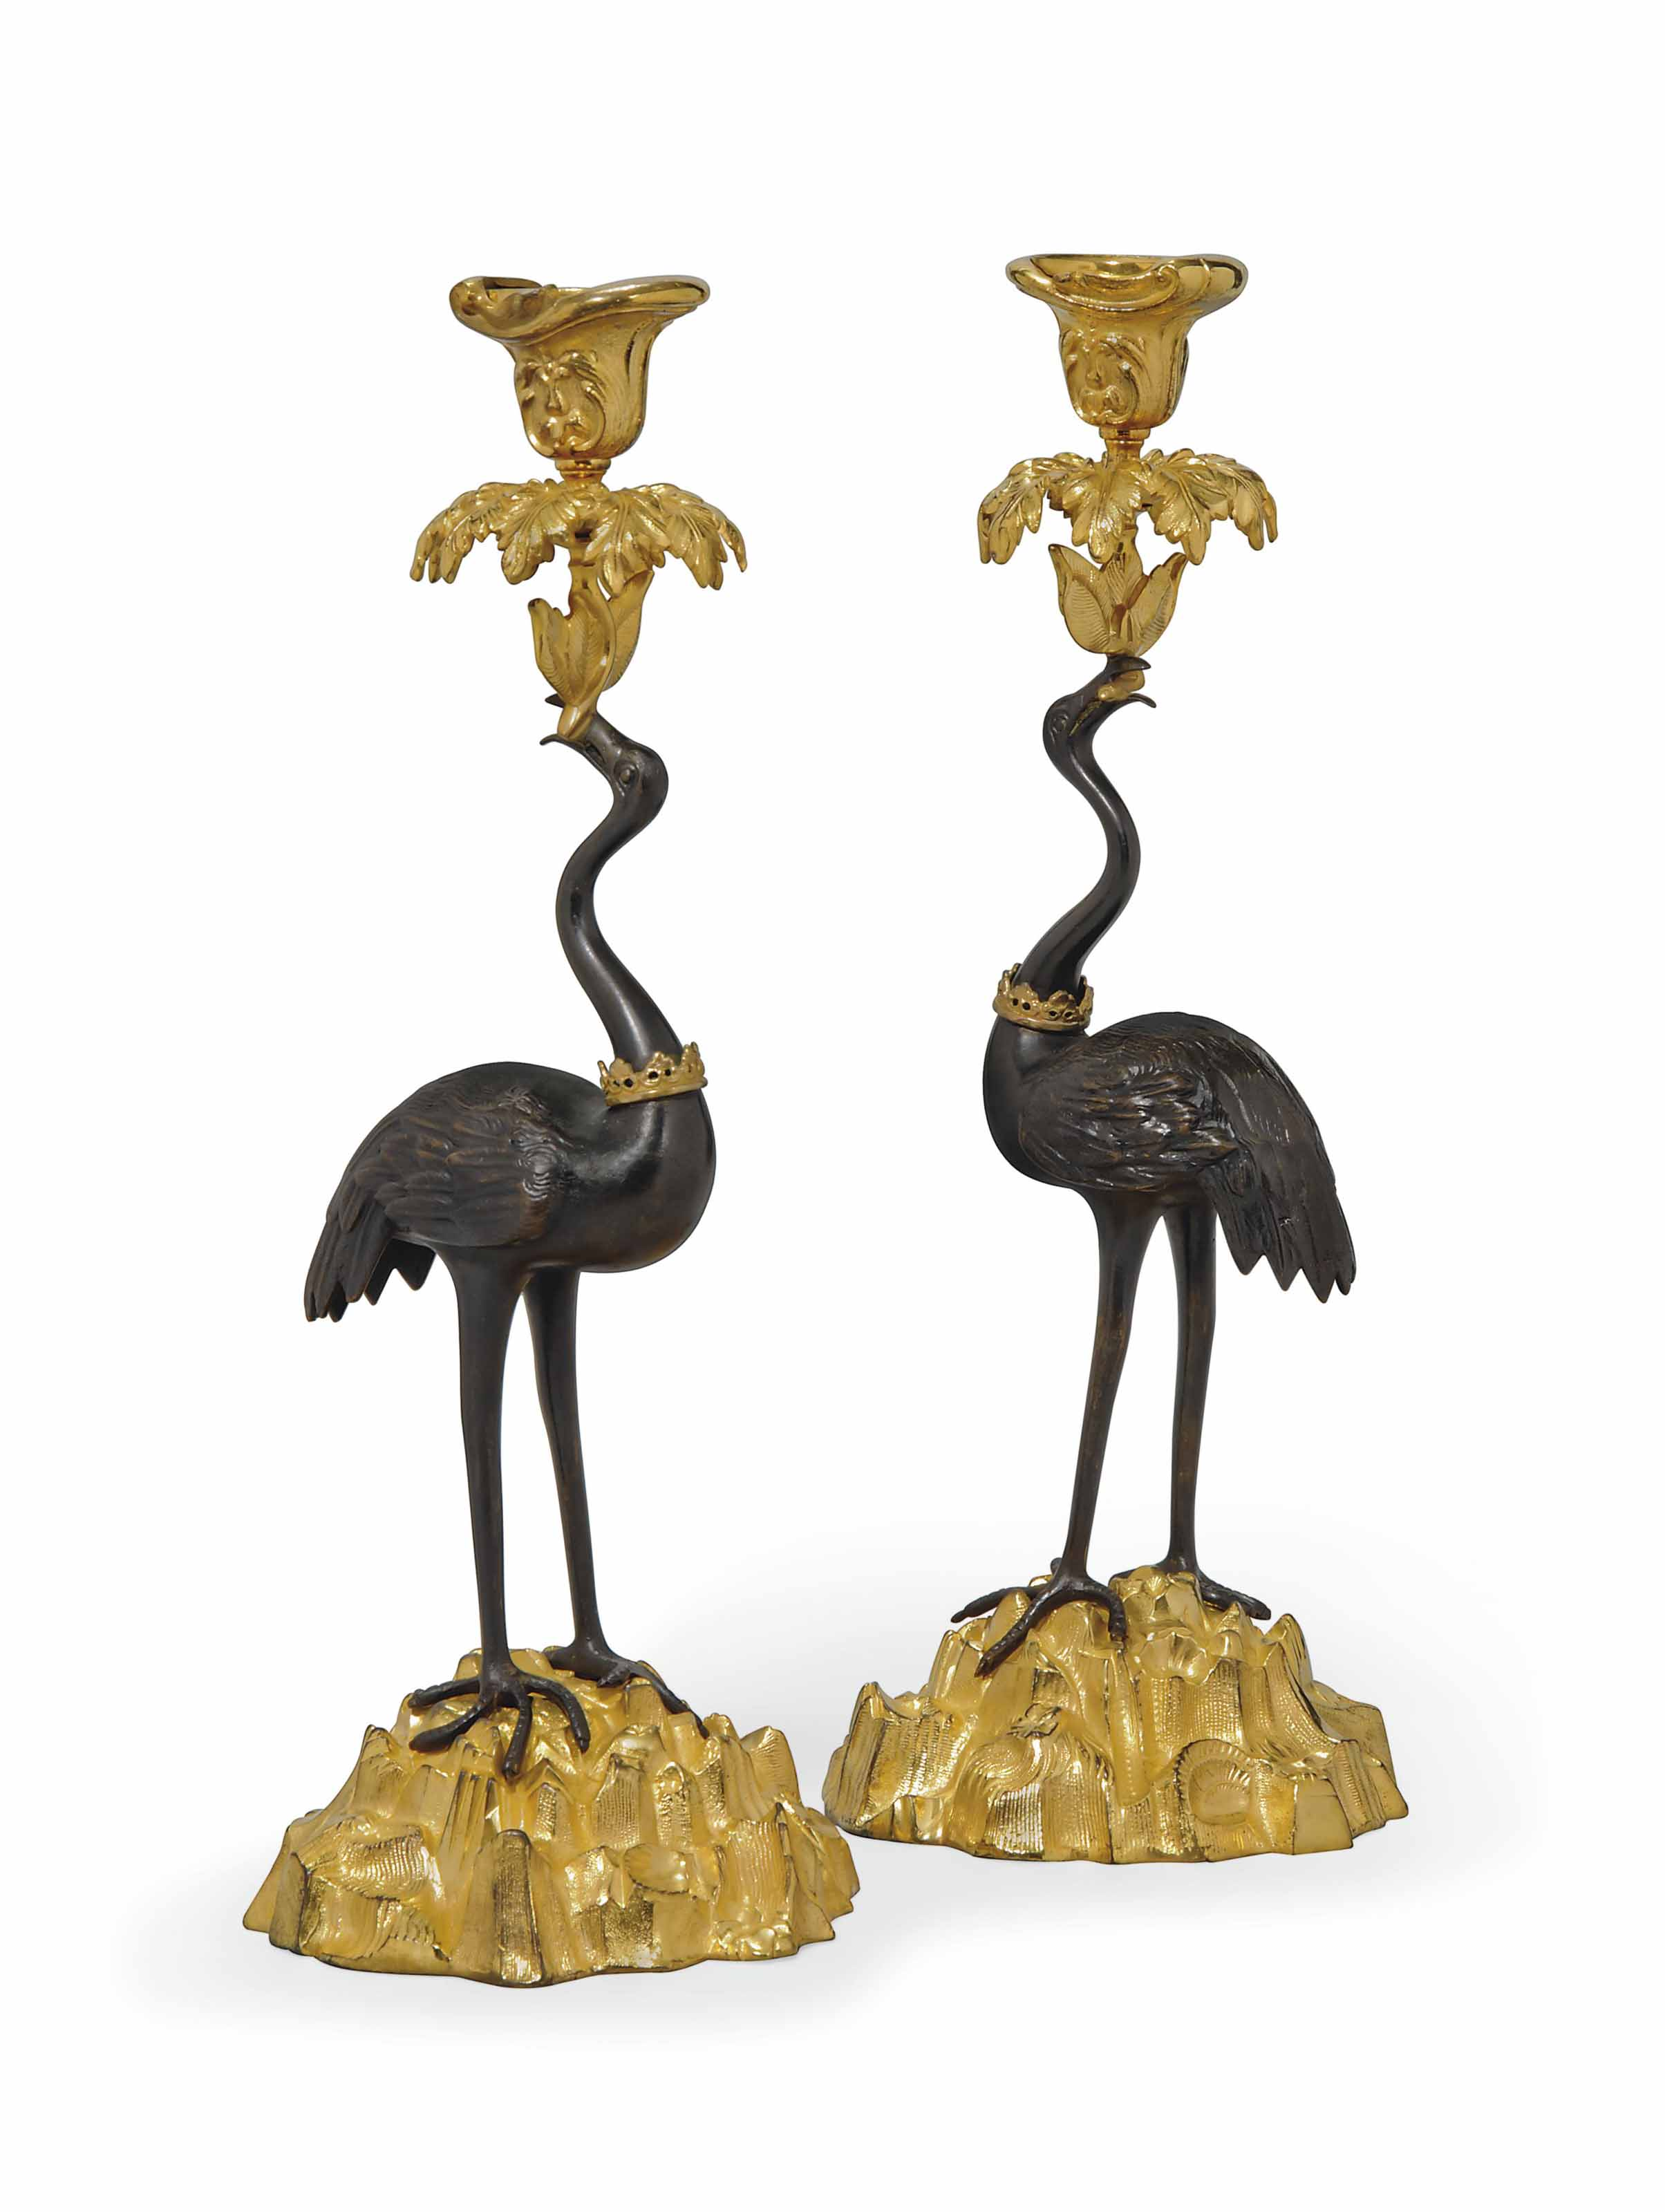 A PAIR OF WILLIAM IV BRONZE CANDLESTICKS